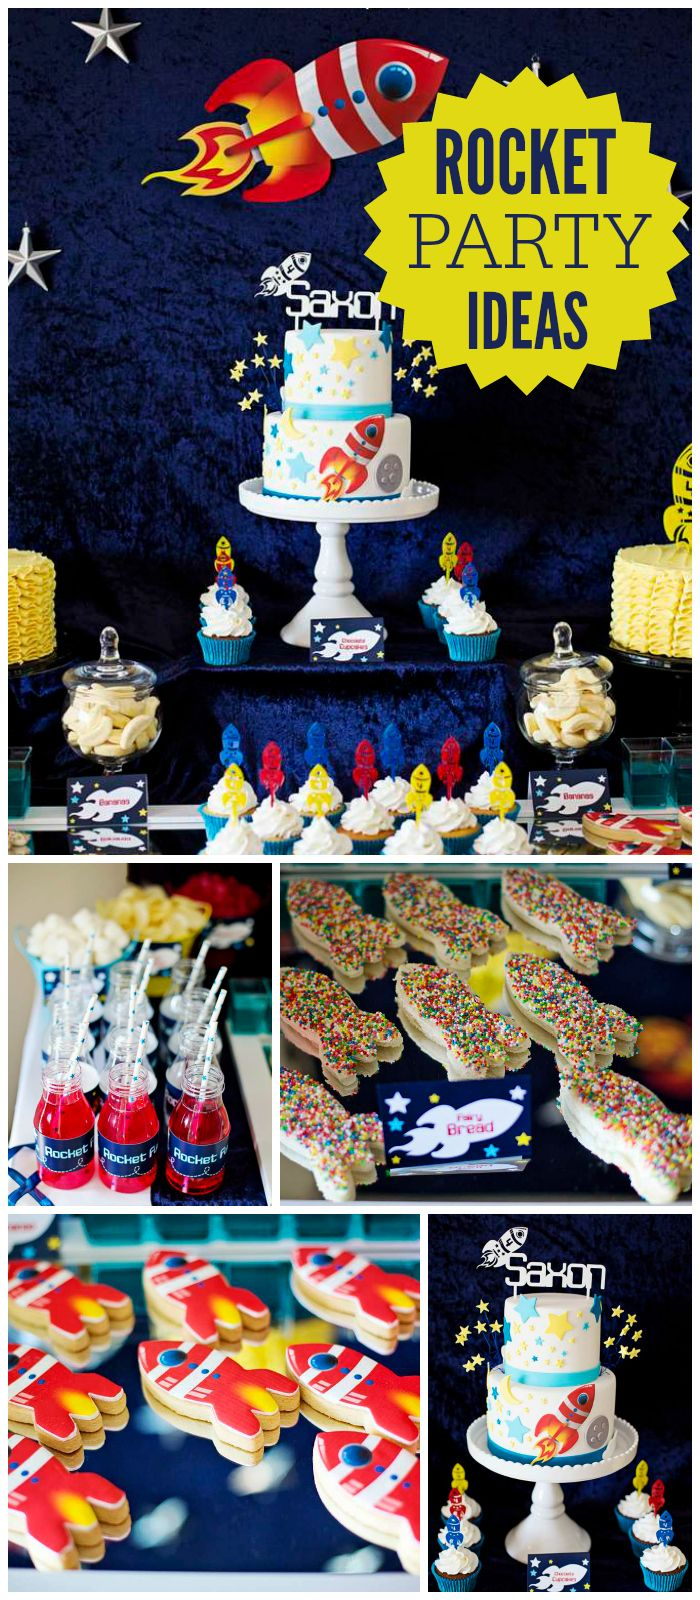 Amazing Check Out This Awesome Outer Space Rocket Birthday Party With Fairy Bread  And An Amazing Cake